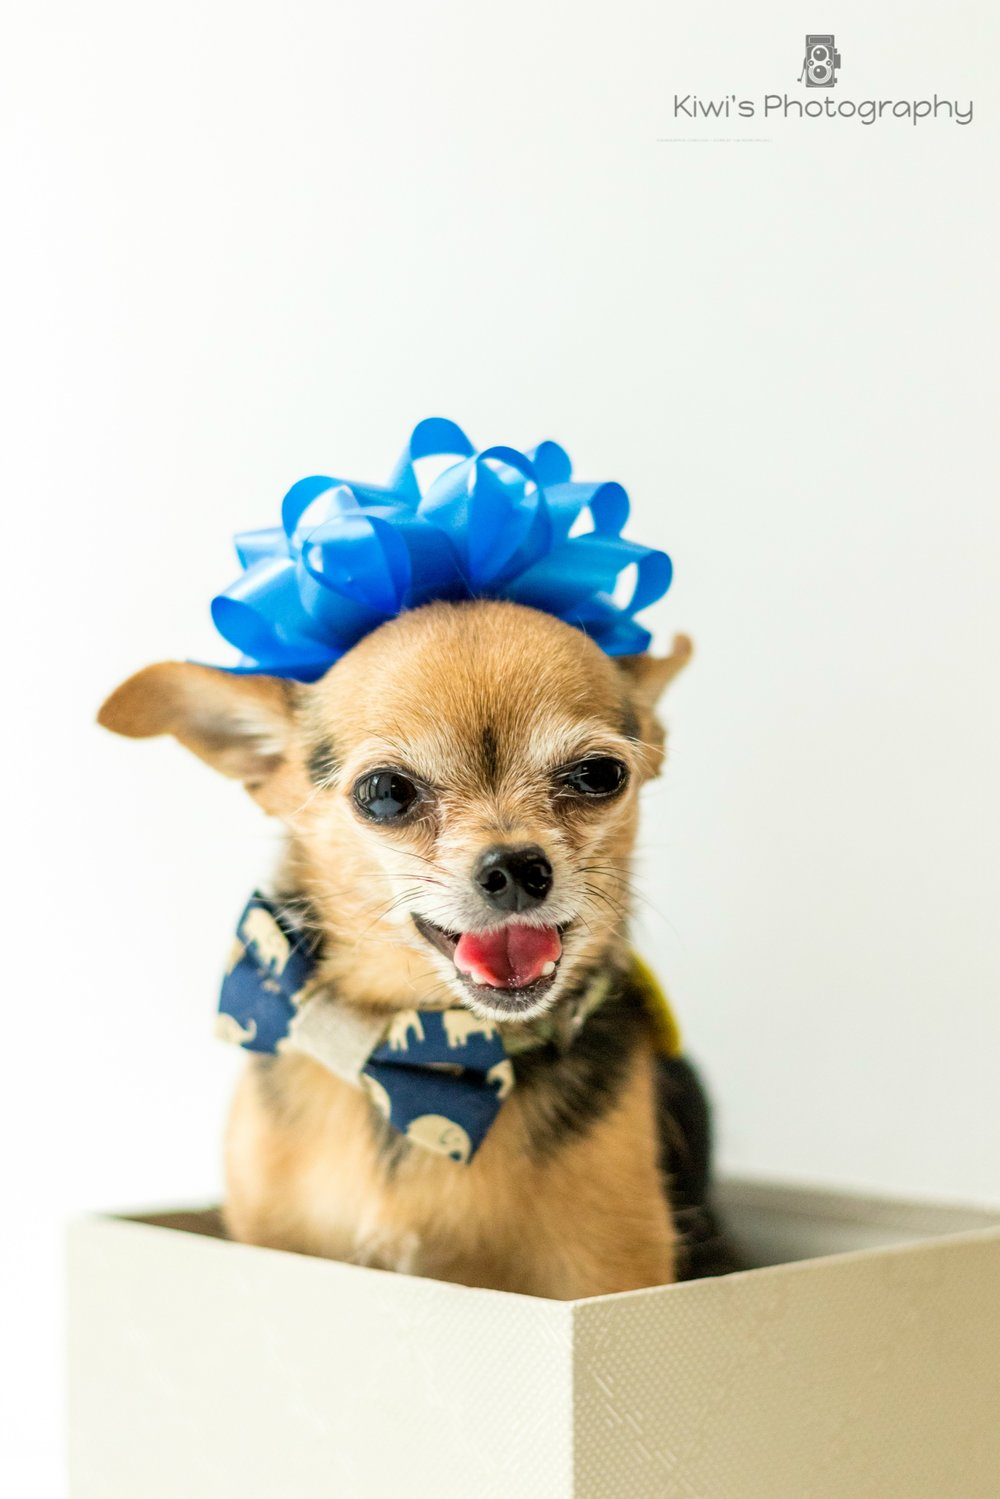 Benji the chorkie - A chihuahua can be a great pick for couch potatoes.